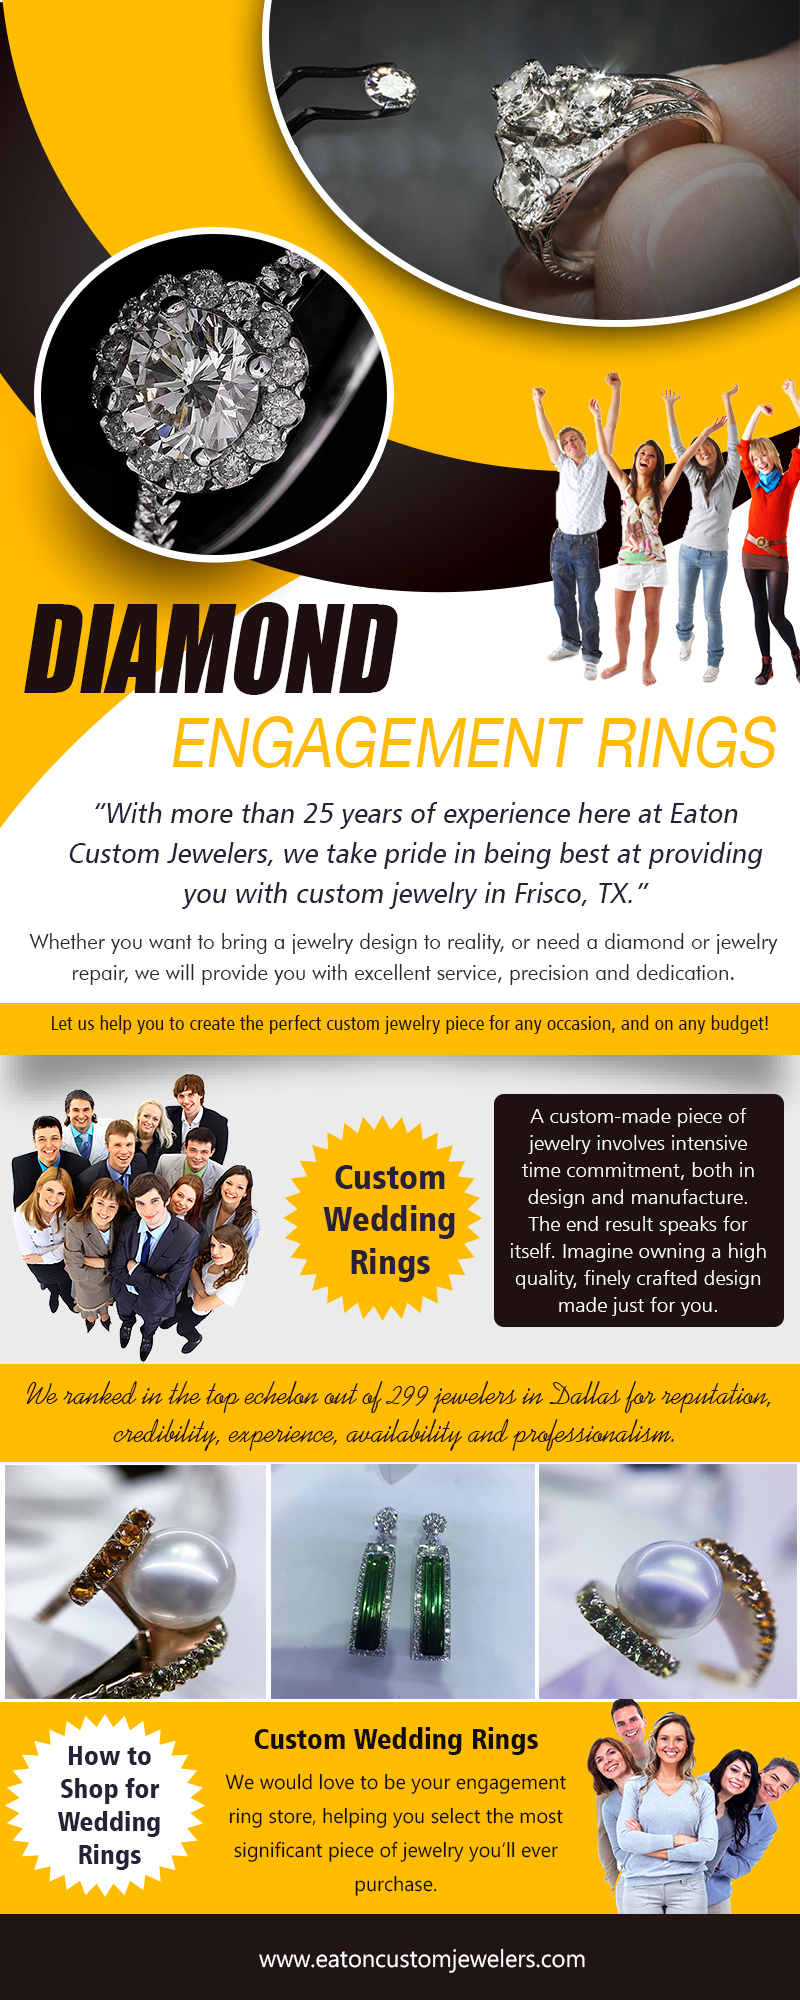 How To Shop For Wedding Rings | 972 335 6500 | eatoncustomjewelers.com